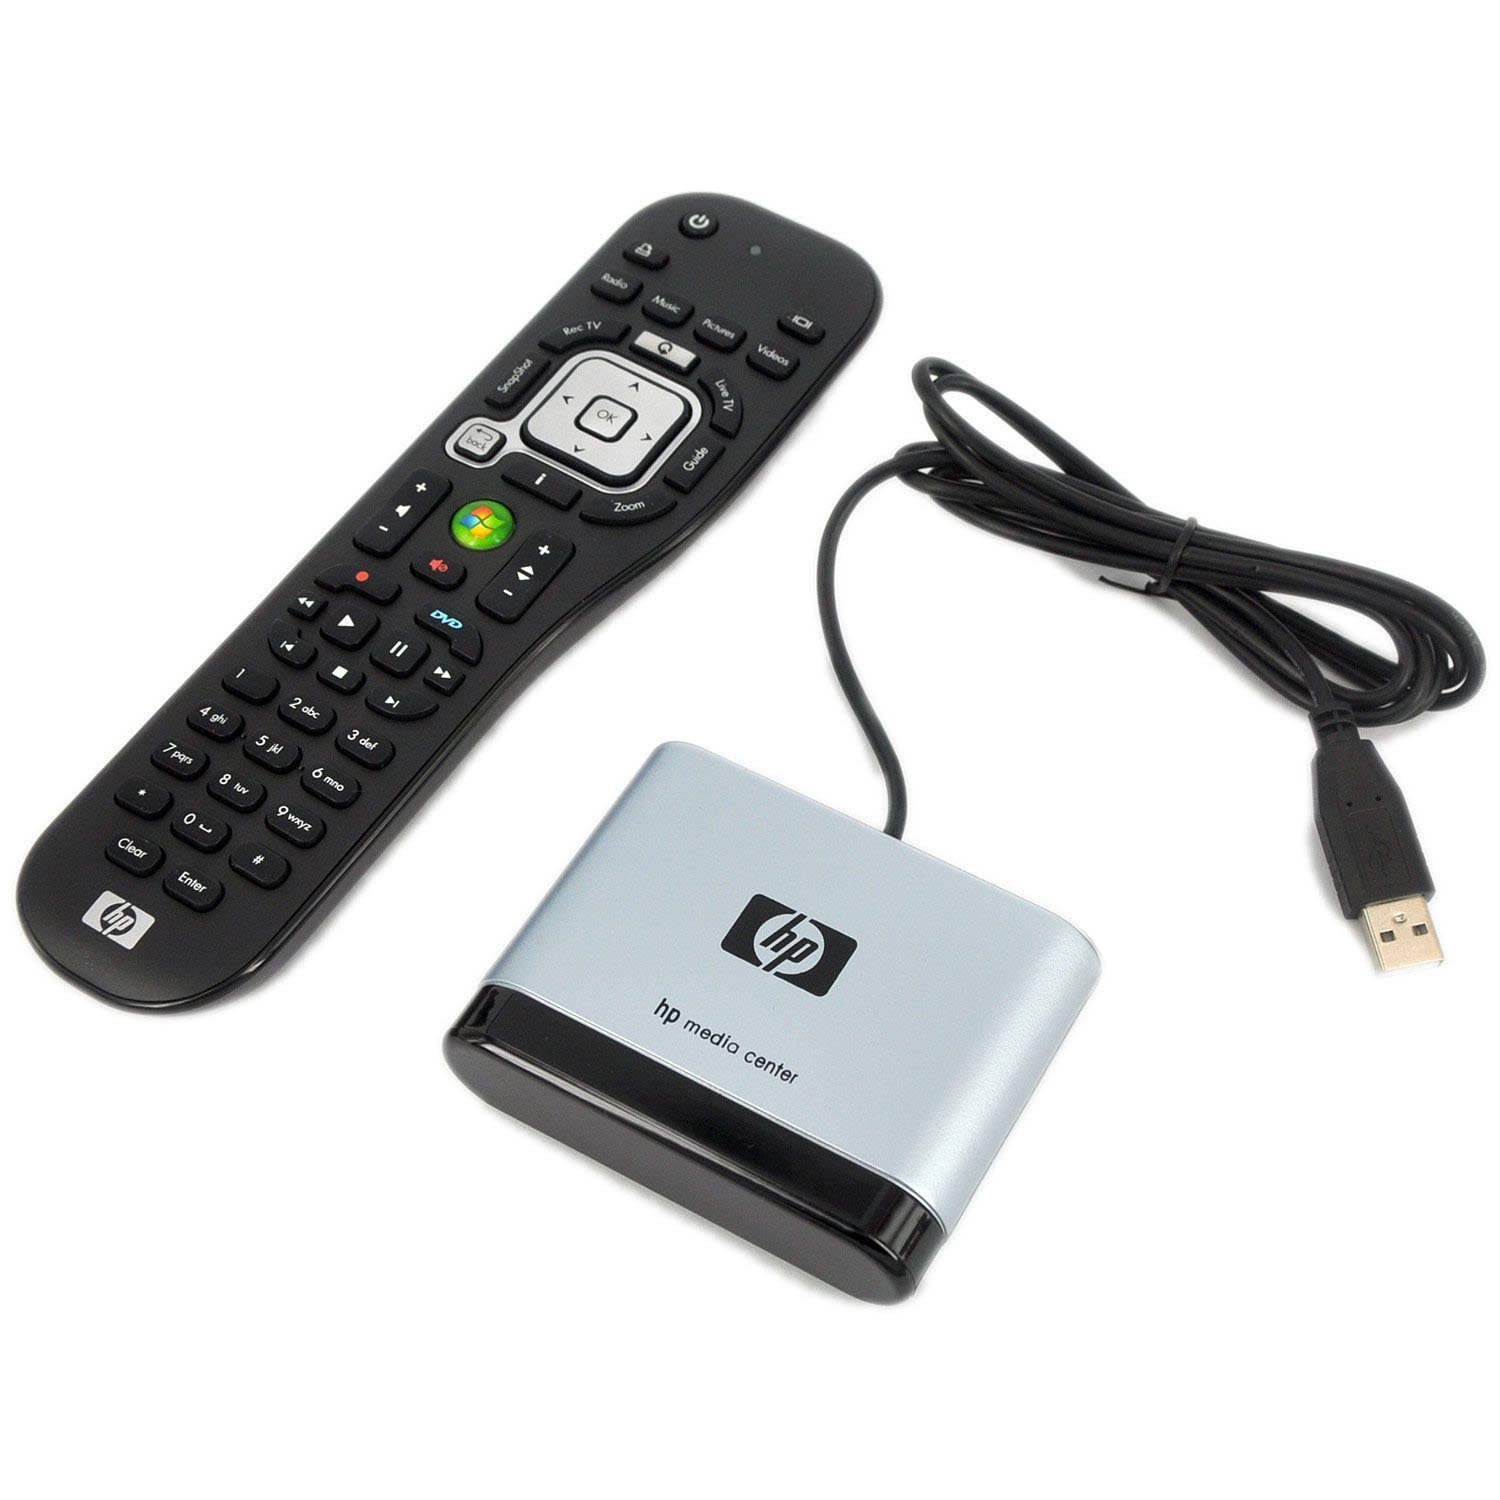 New HP OEM Windows Media Center HTPC MCE PC RC6 IR Remote Control + IR emitter and Infrared Receiver for Windows7 Vista XP Home Premium and Ultimate Edition (Discontinued by Manufacturer)